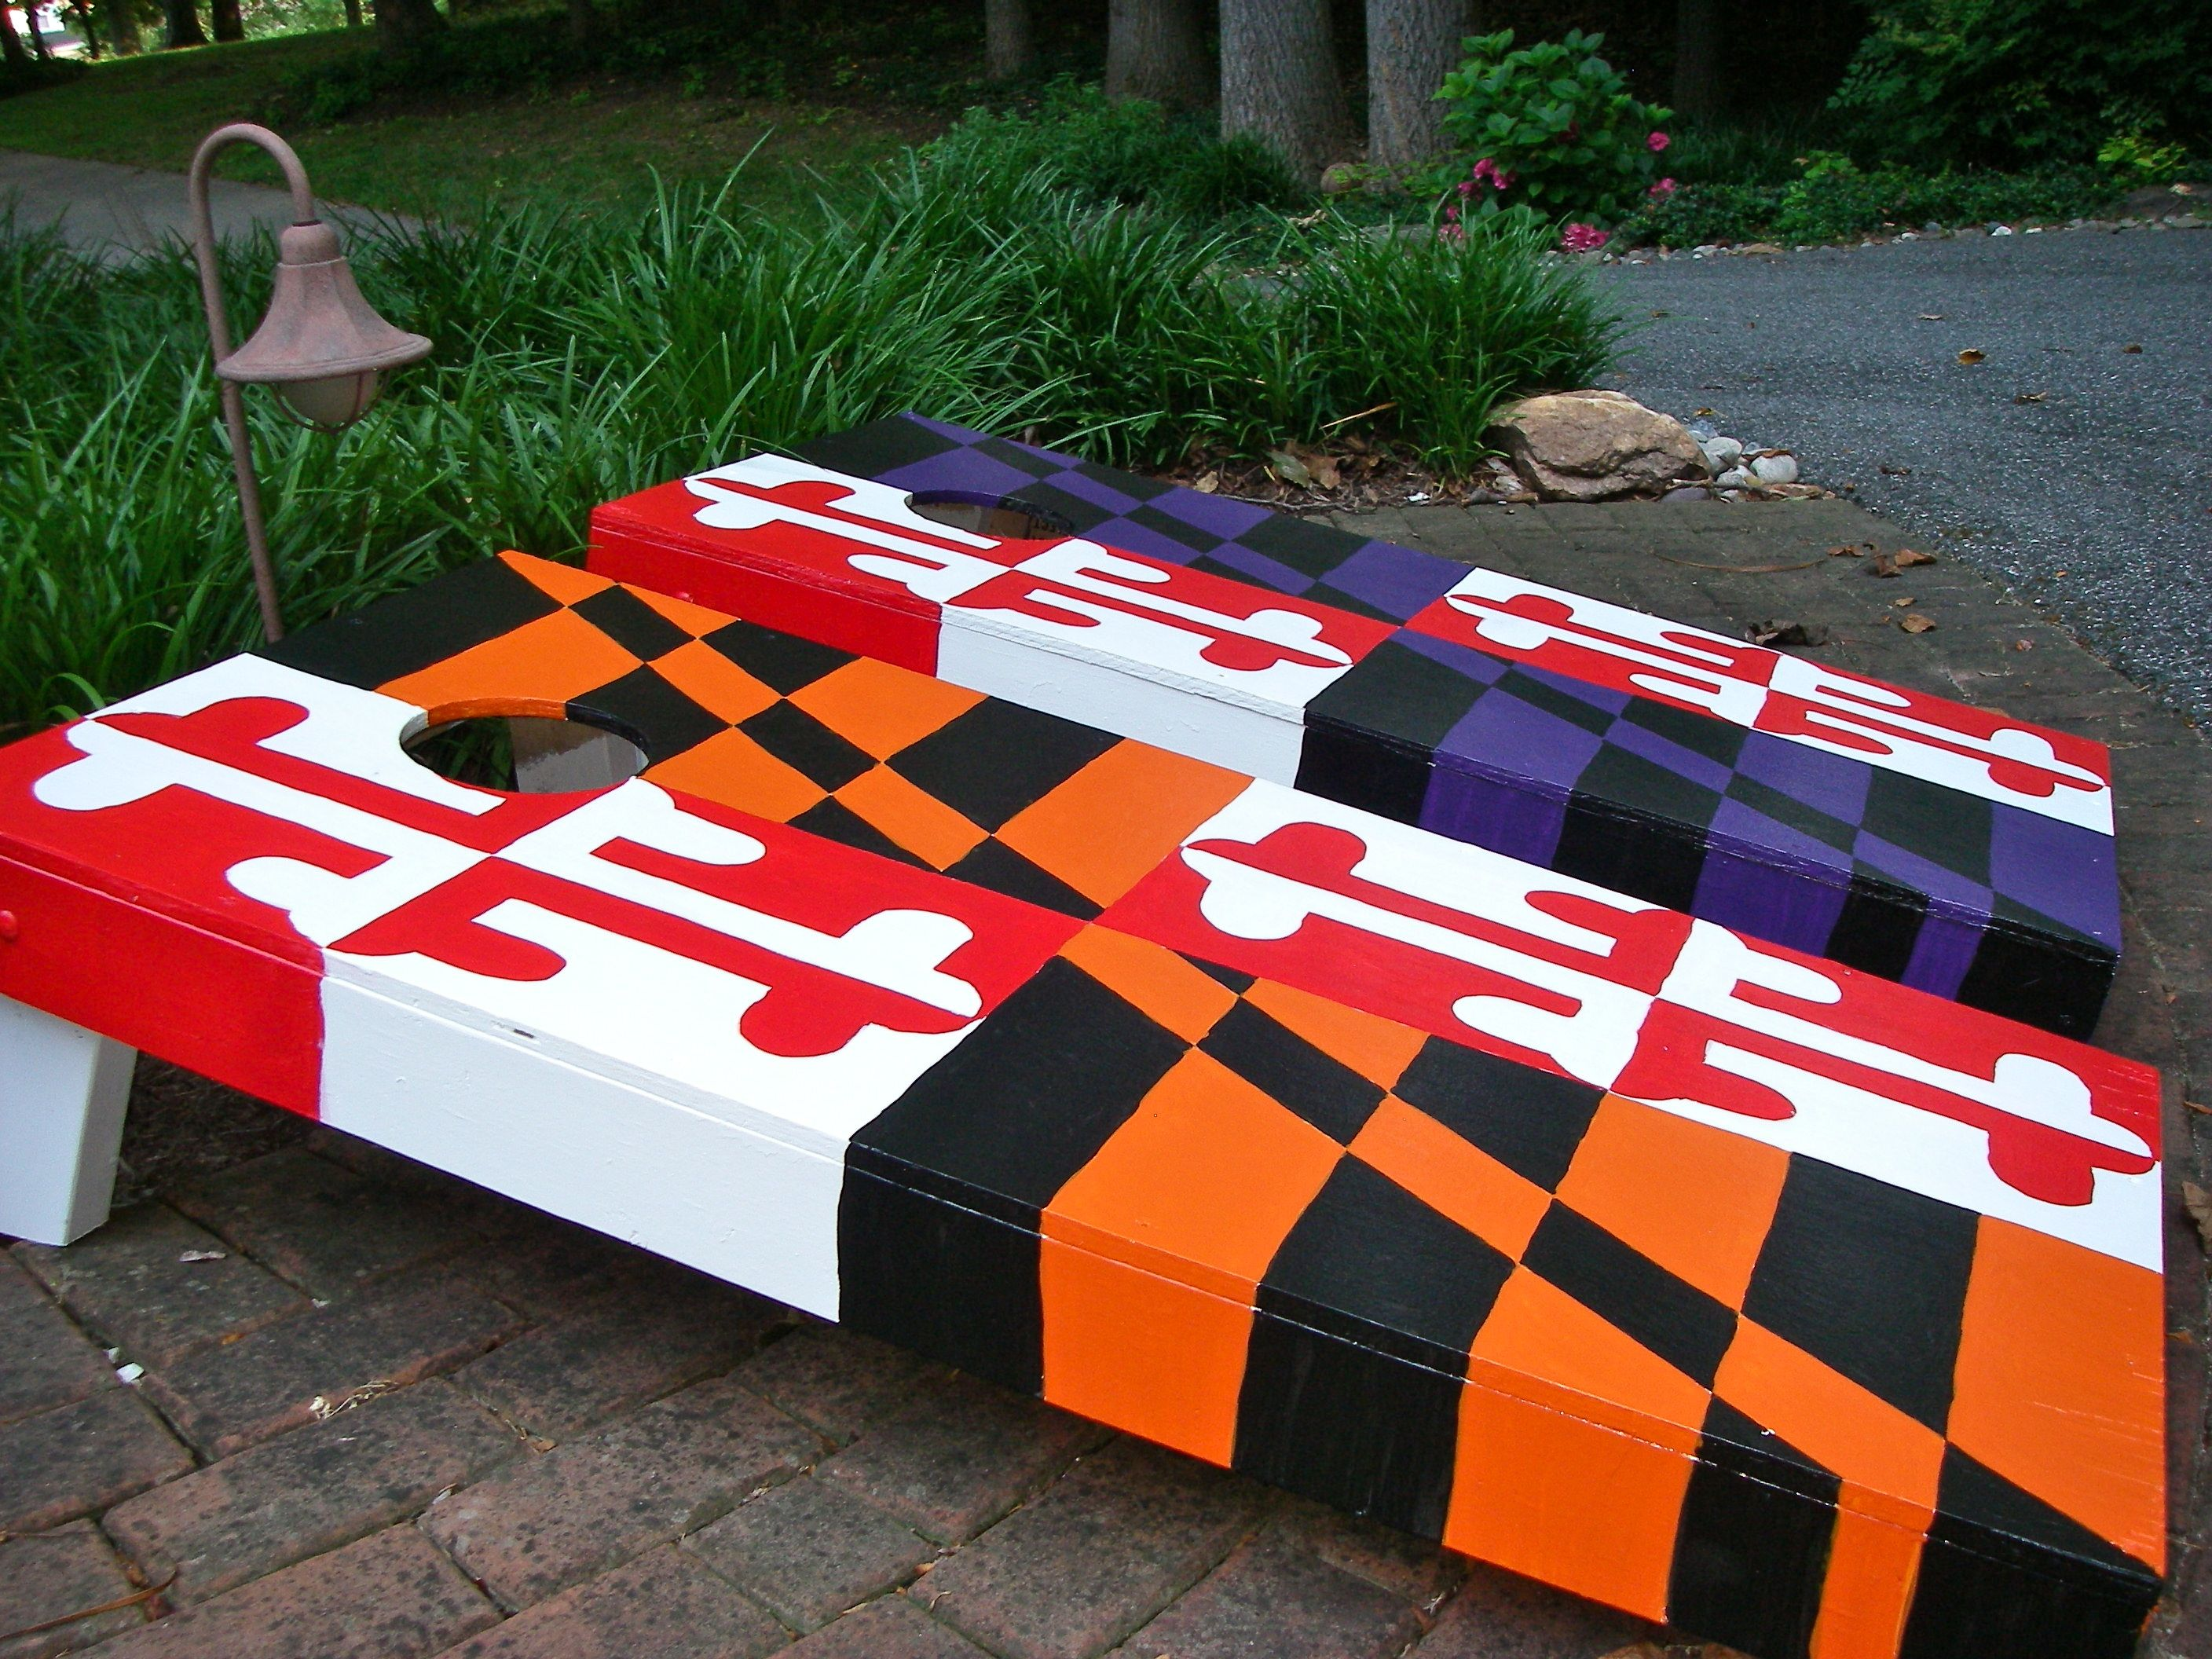 diy cornhole - Cornhole Design Ideas